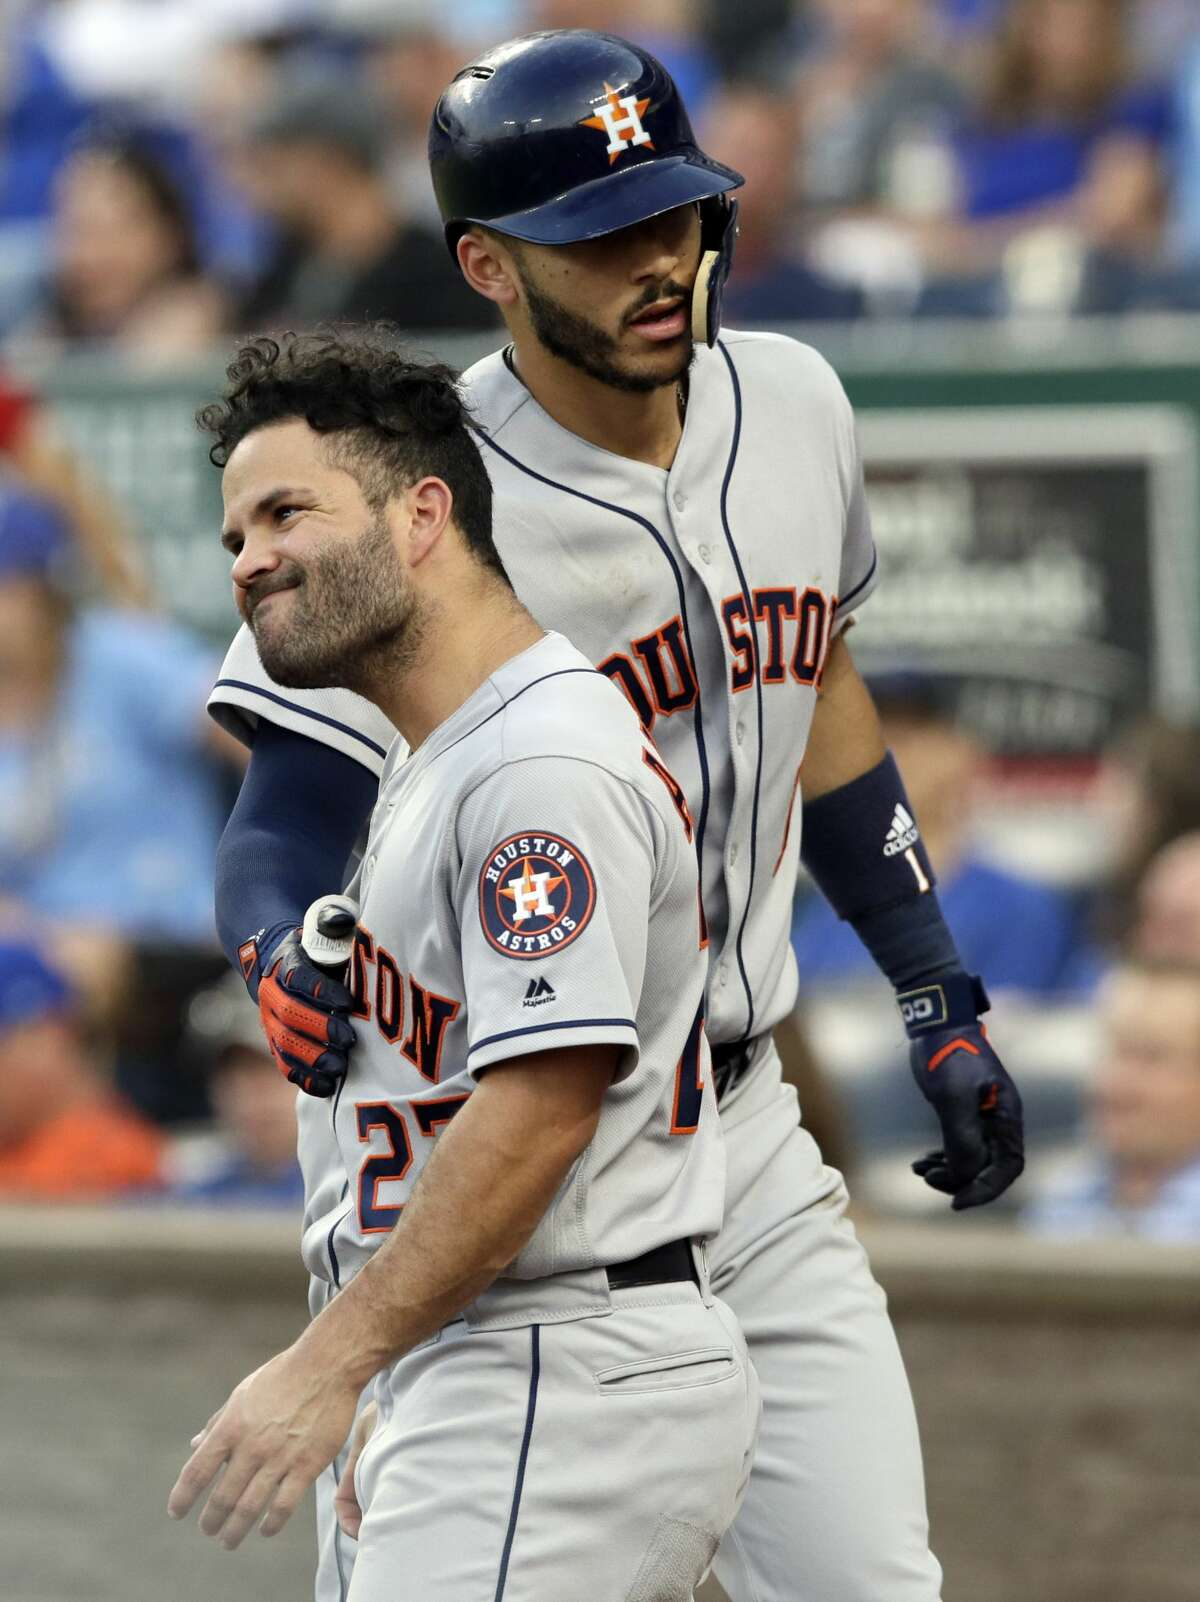 Houston Astros' Carlos Correa, right, is congratulated by teammate Jose Altuve (27) after his solo home run off Kansas City Royals starting pitcher Jakob Junis during the fourth inning of a baseball game at Kauffman Stadium in Kansas City, Mo., Friday, June 15, 2018. (AP Photo/Orlin Wagner)